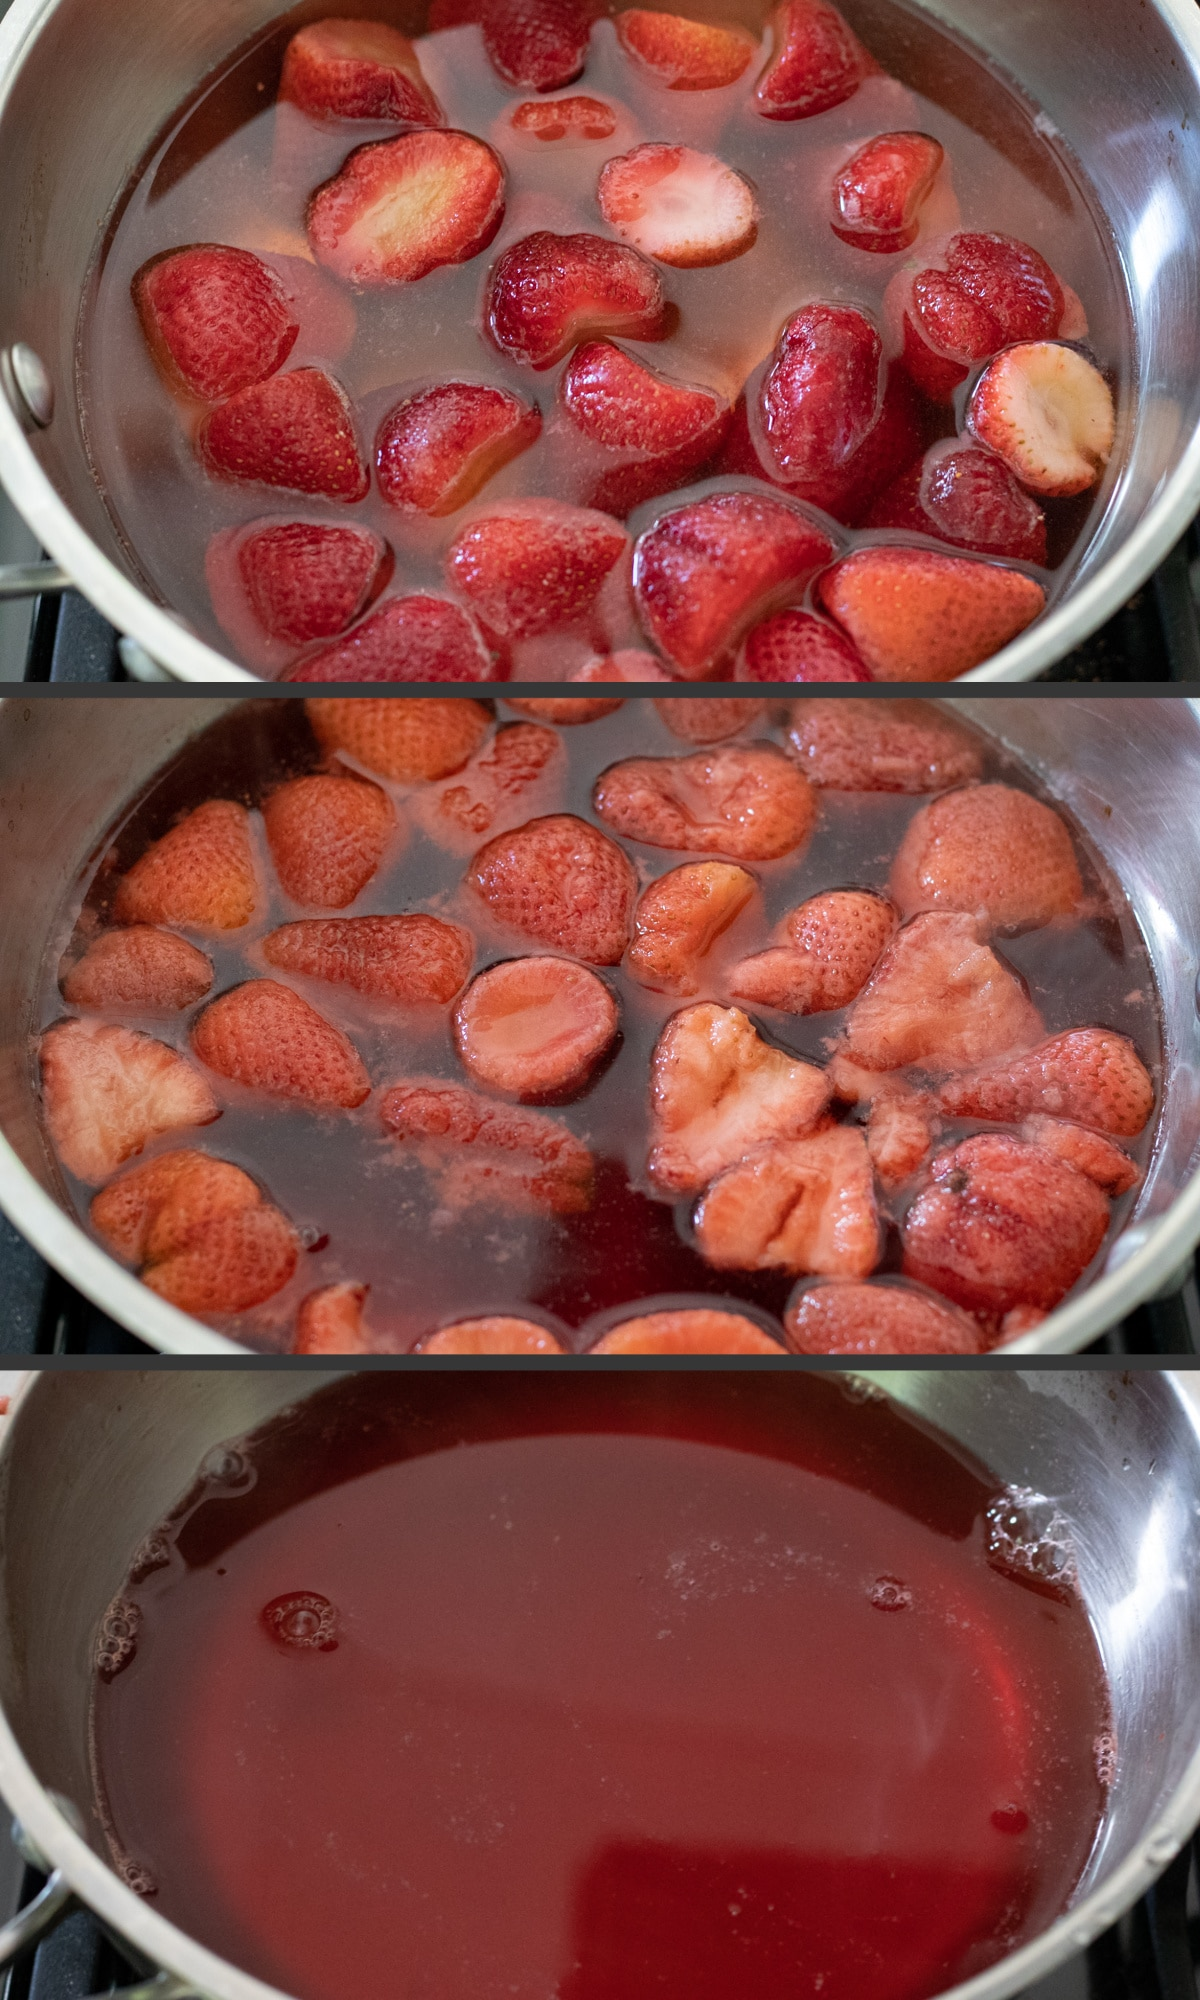 3-photo collage showing the making of homemade vegan jell-o